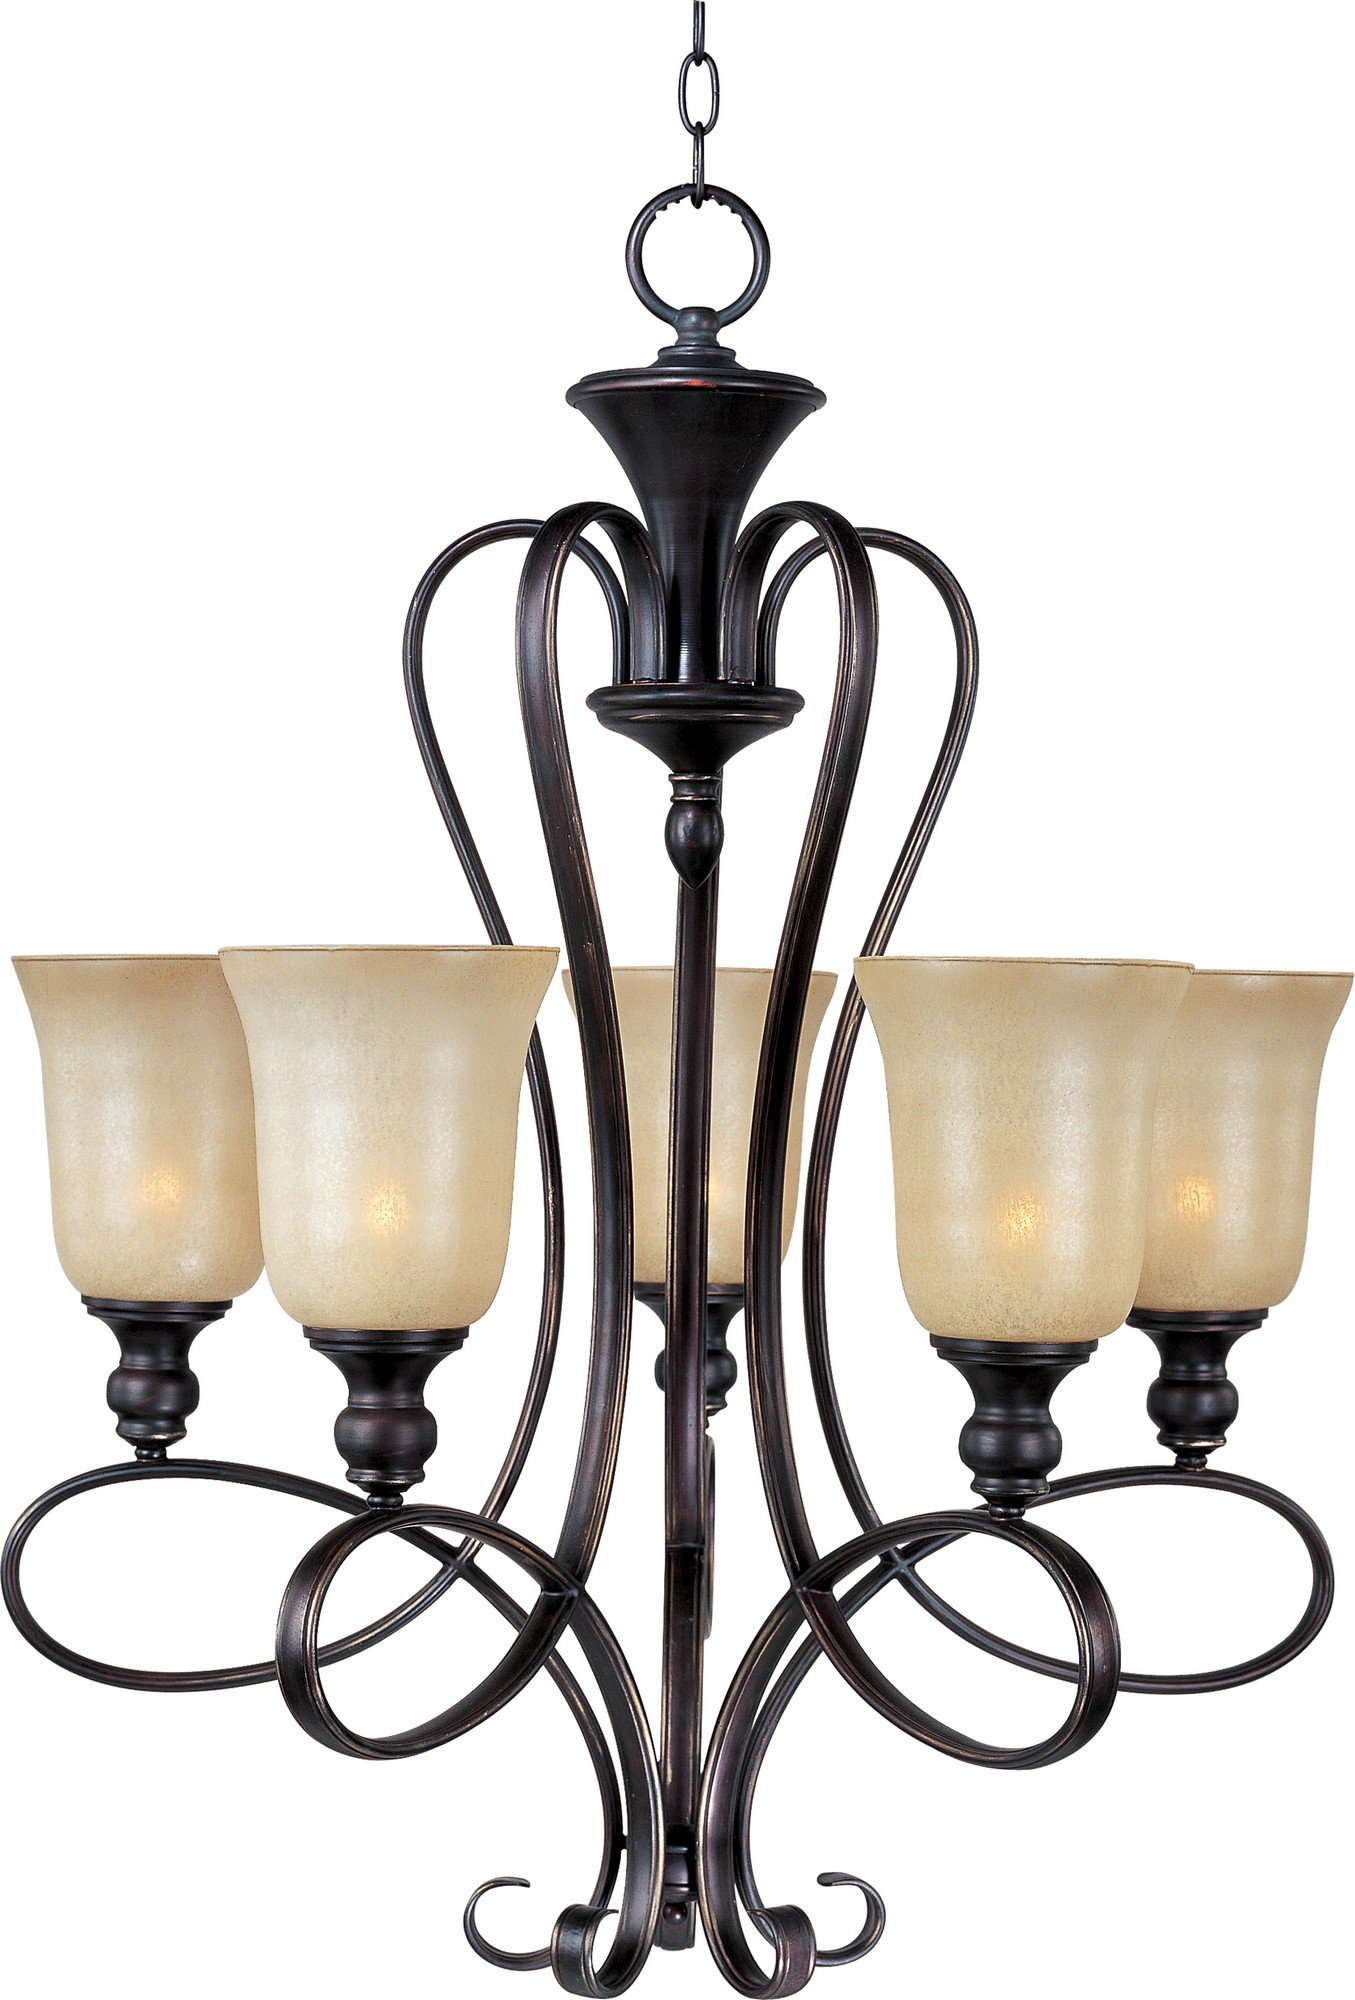 Maxim 21305WSOI Infinity 5-Light Chandelier, Oil Rubbed Bronze Finish, Wilshire Glass, MB Incandescent Incandescent Bulb , 100W Max., Dry Safety Rating, Standard Dimmable, Opal Glass Shade Material, 6900 Rated Lumens